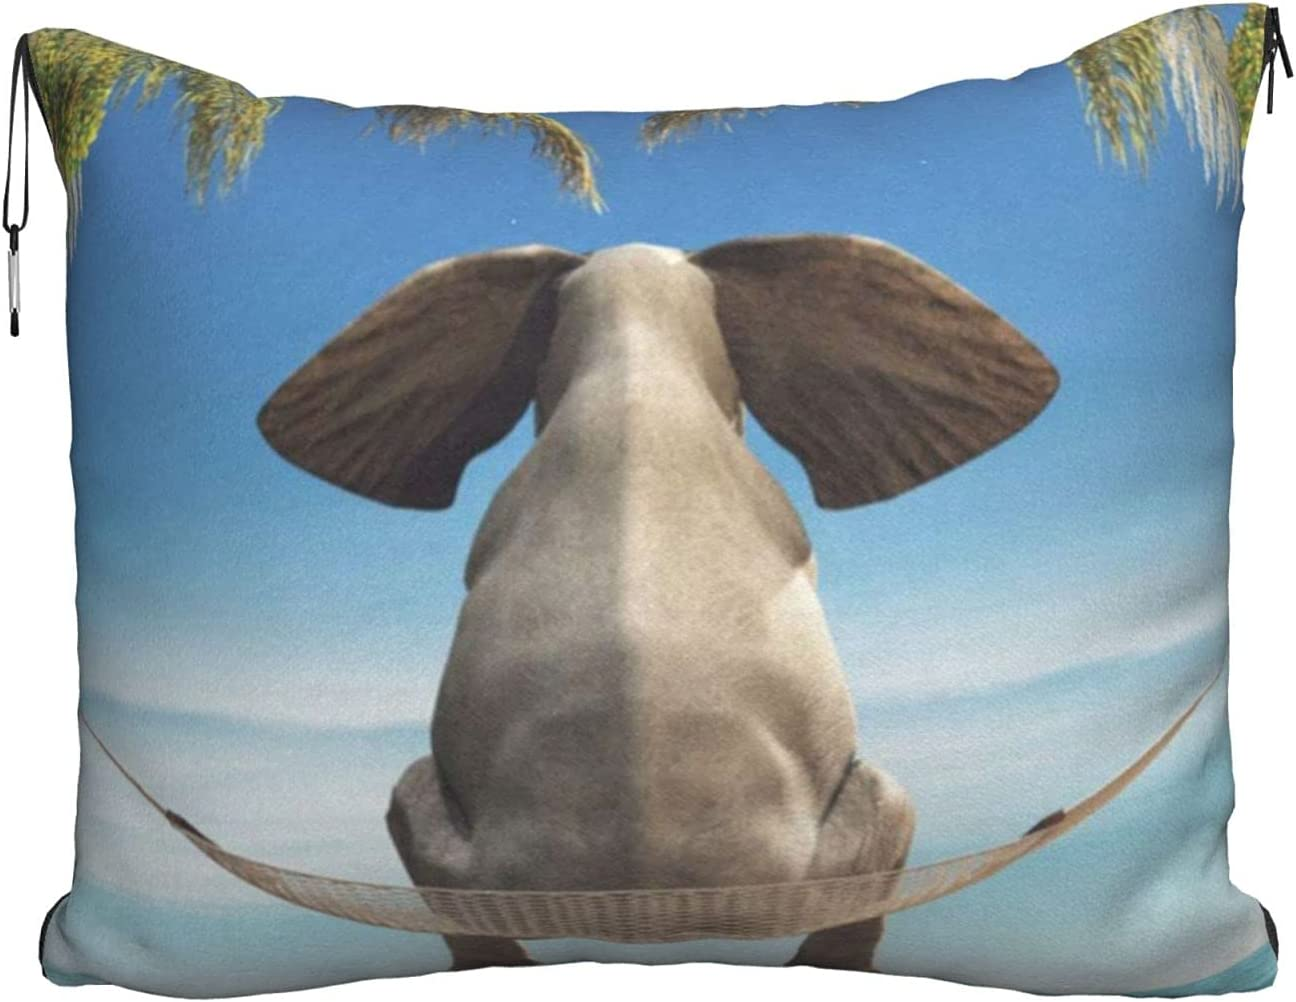 Mescchsktropical Swing Elephant Print Travel Outlet sale feature Shipping included Blanket Pillow Comb